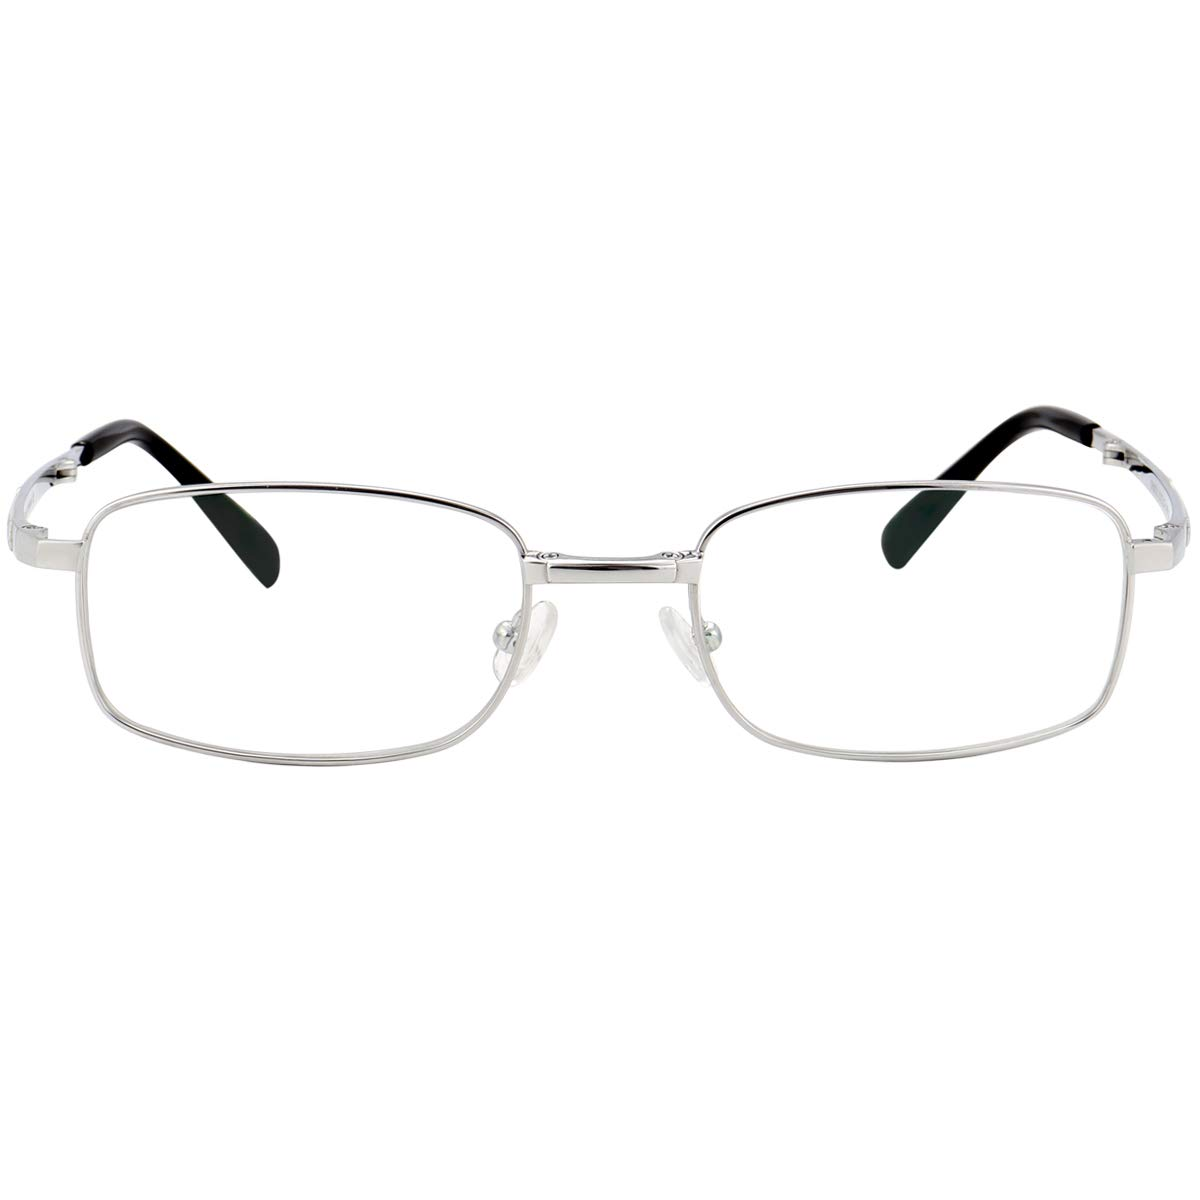 Portable Glasses with Case Clear Lens 53mm Agstum Foldable Pure Titanium Glasses Optical Frame for Mens